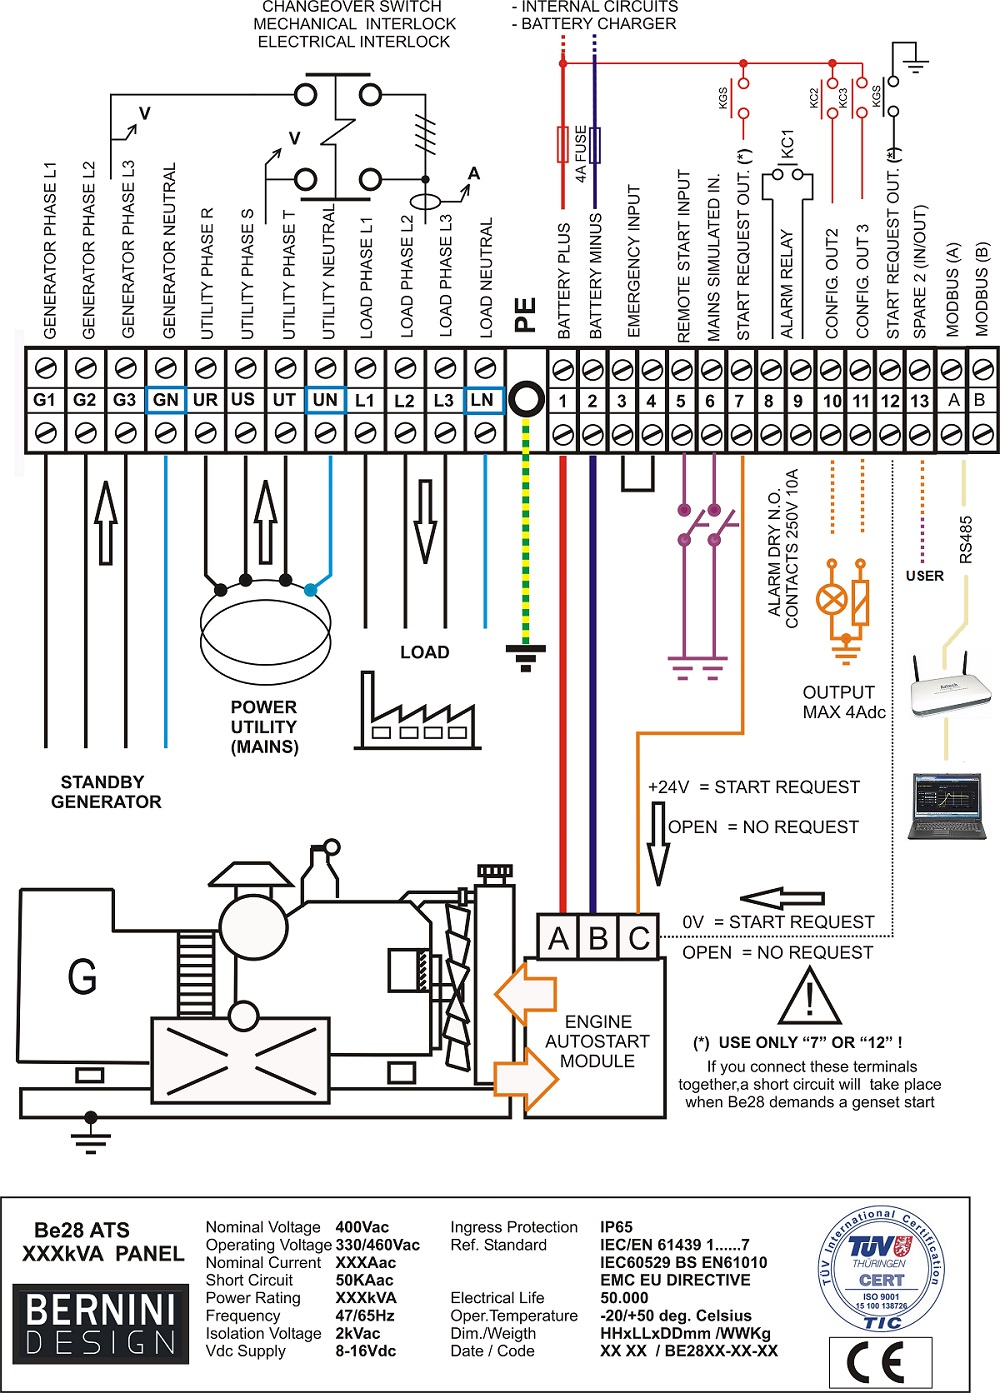 medium resolution of ge ats wiring diagram 16 11 ulrich temme de u2022